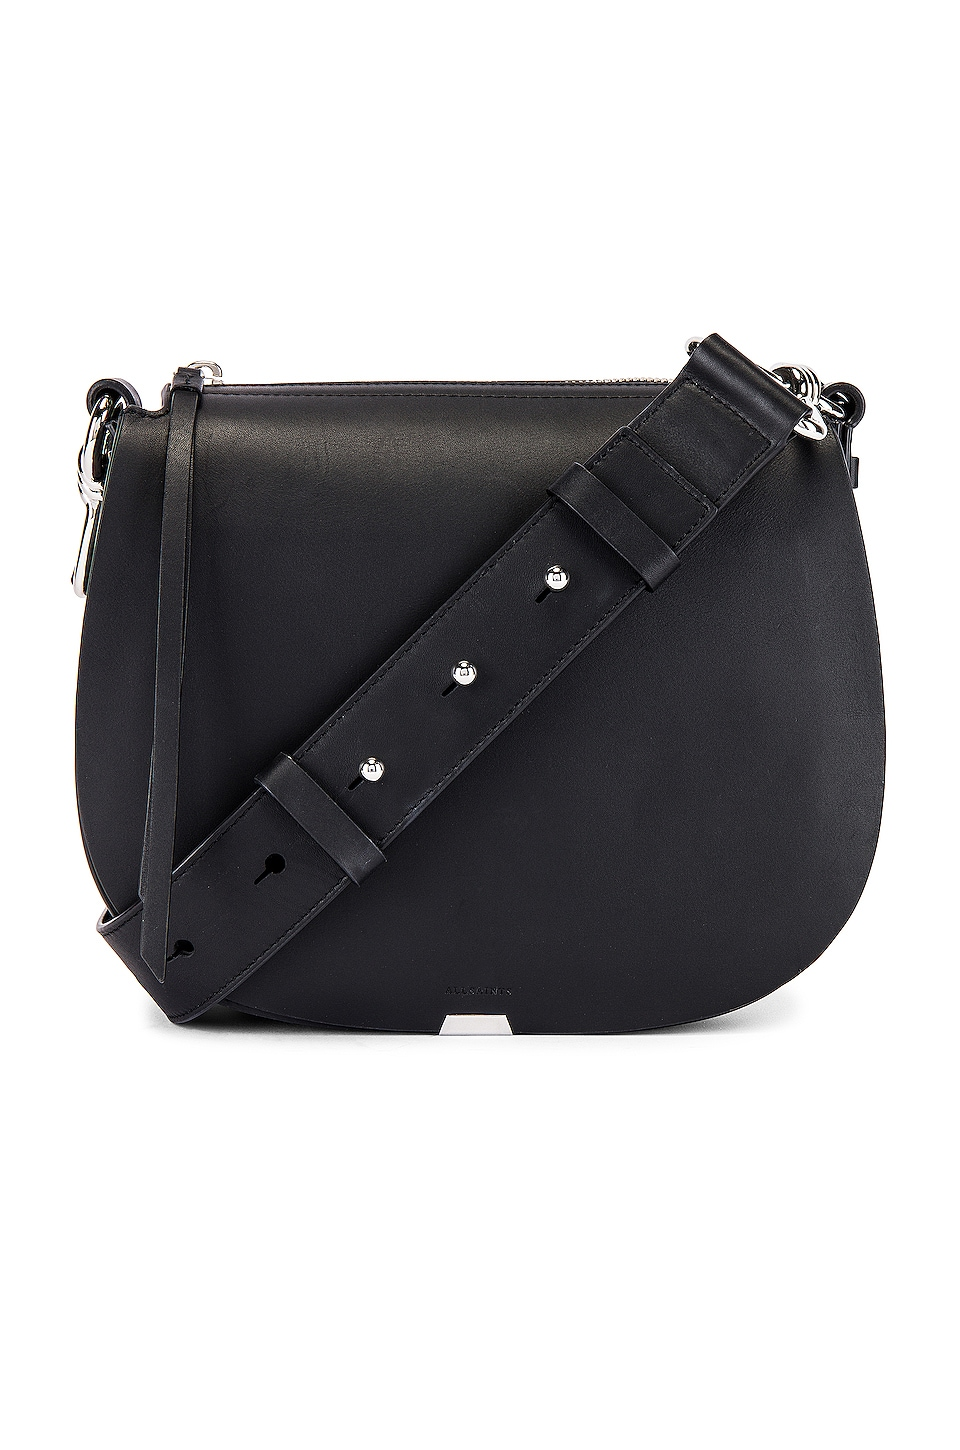 ALLSAINTS Captain Small Round Crossbody in Black